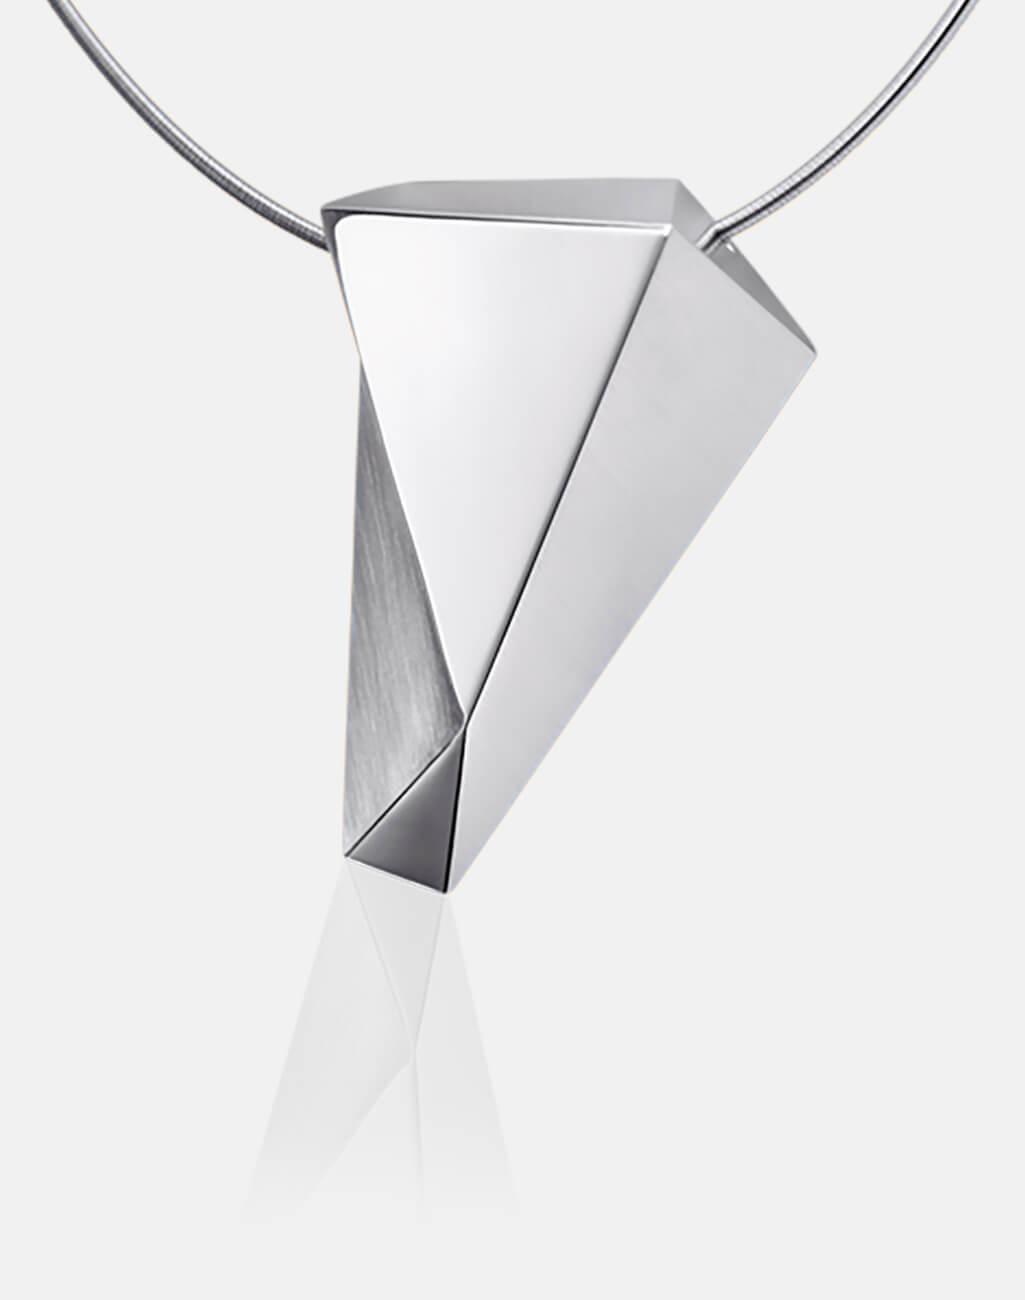 Stealth | Collier, Kette, Kettenanhänger - 750 Weissgold, Diamanten-Brillanten | necklace, pendant - 18kt white gold, diamonds | SYNO-Schmuck.com